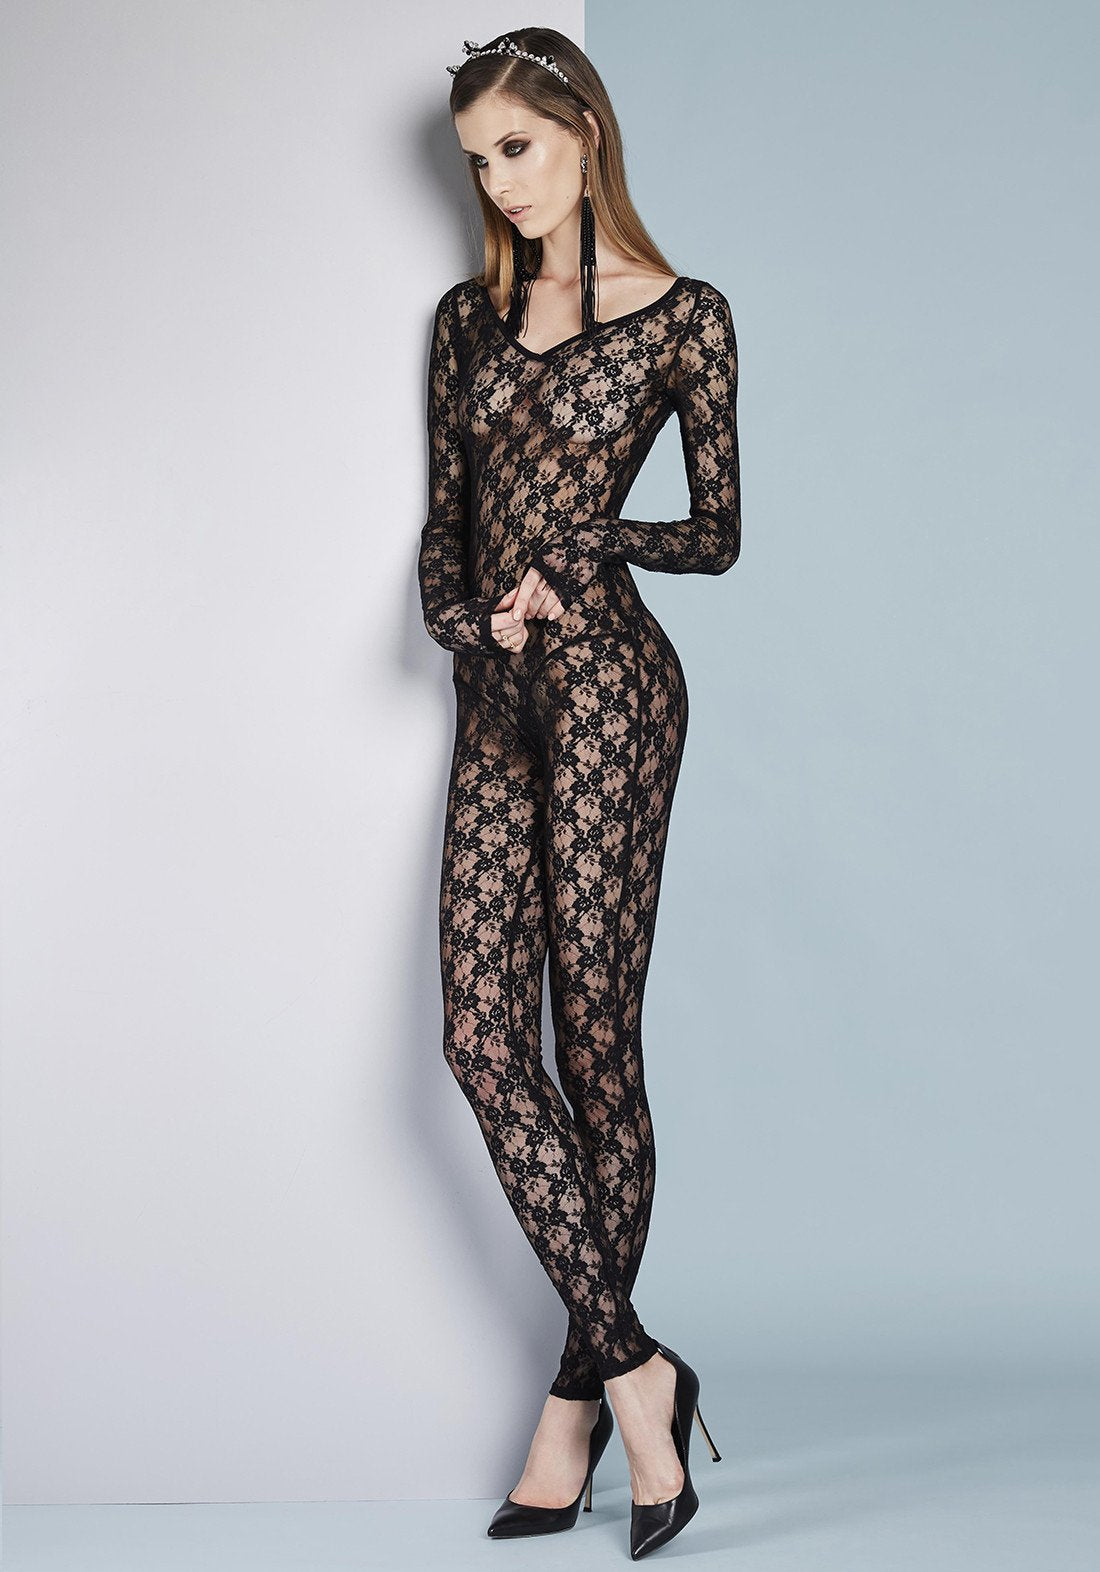 Petits Plaisirs Lace Jumpsuit in Black